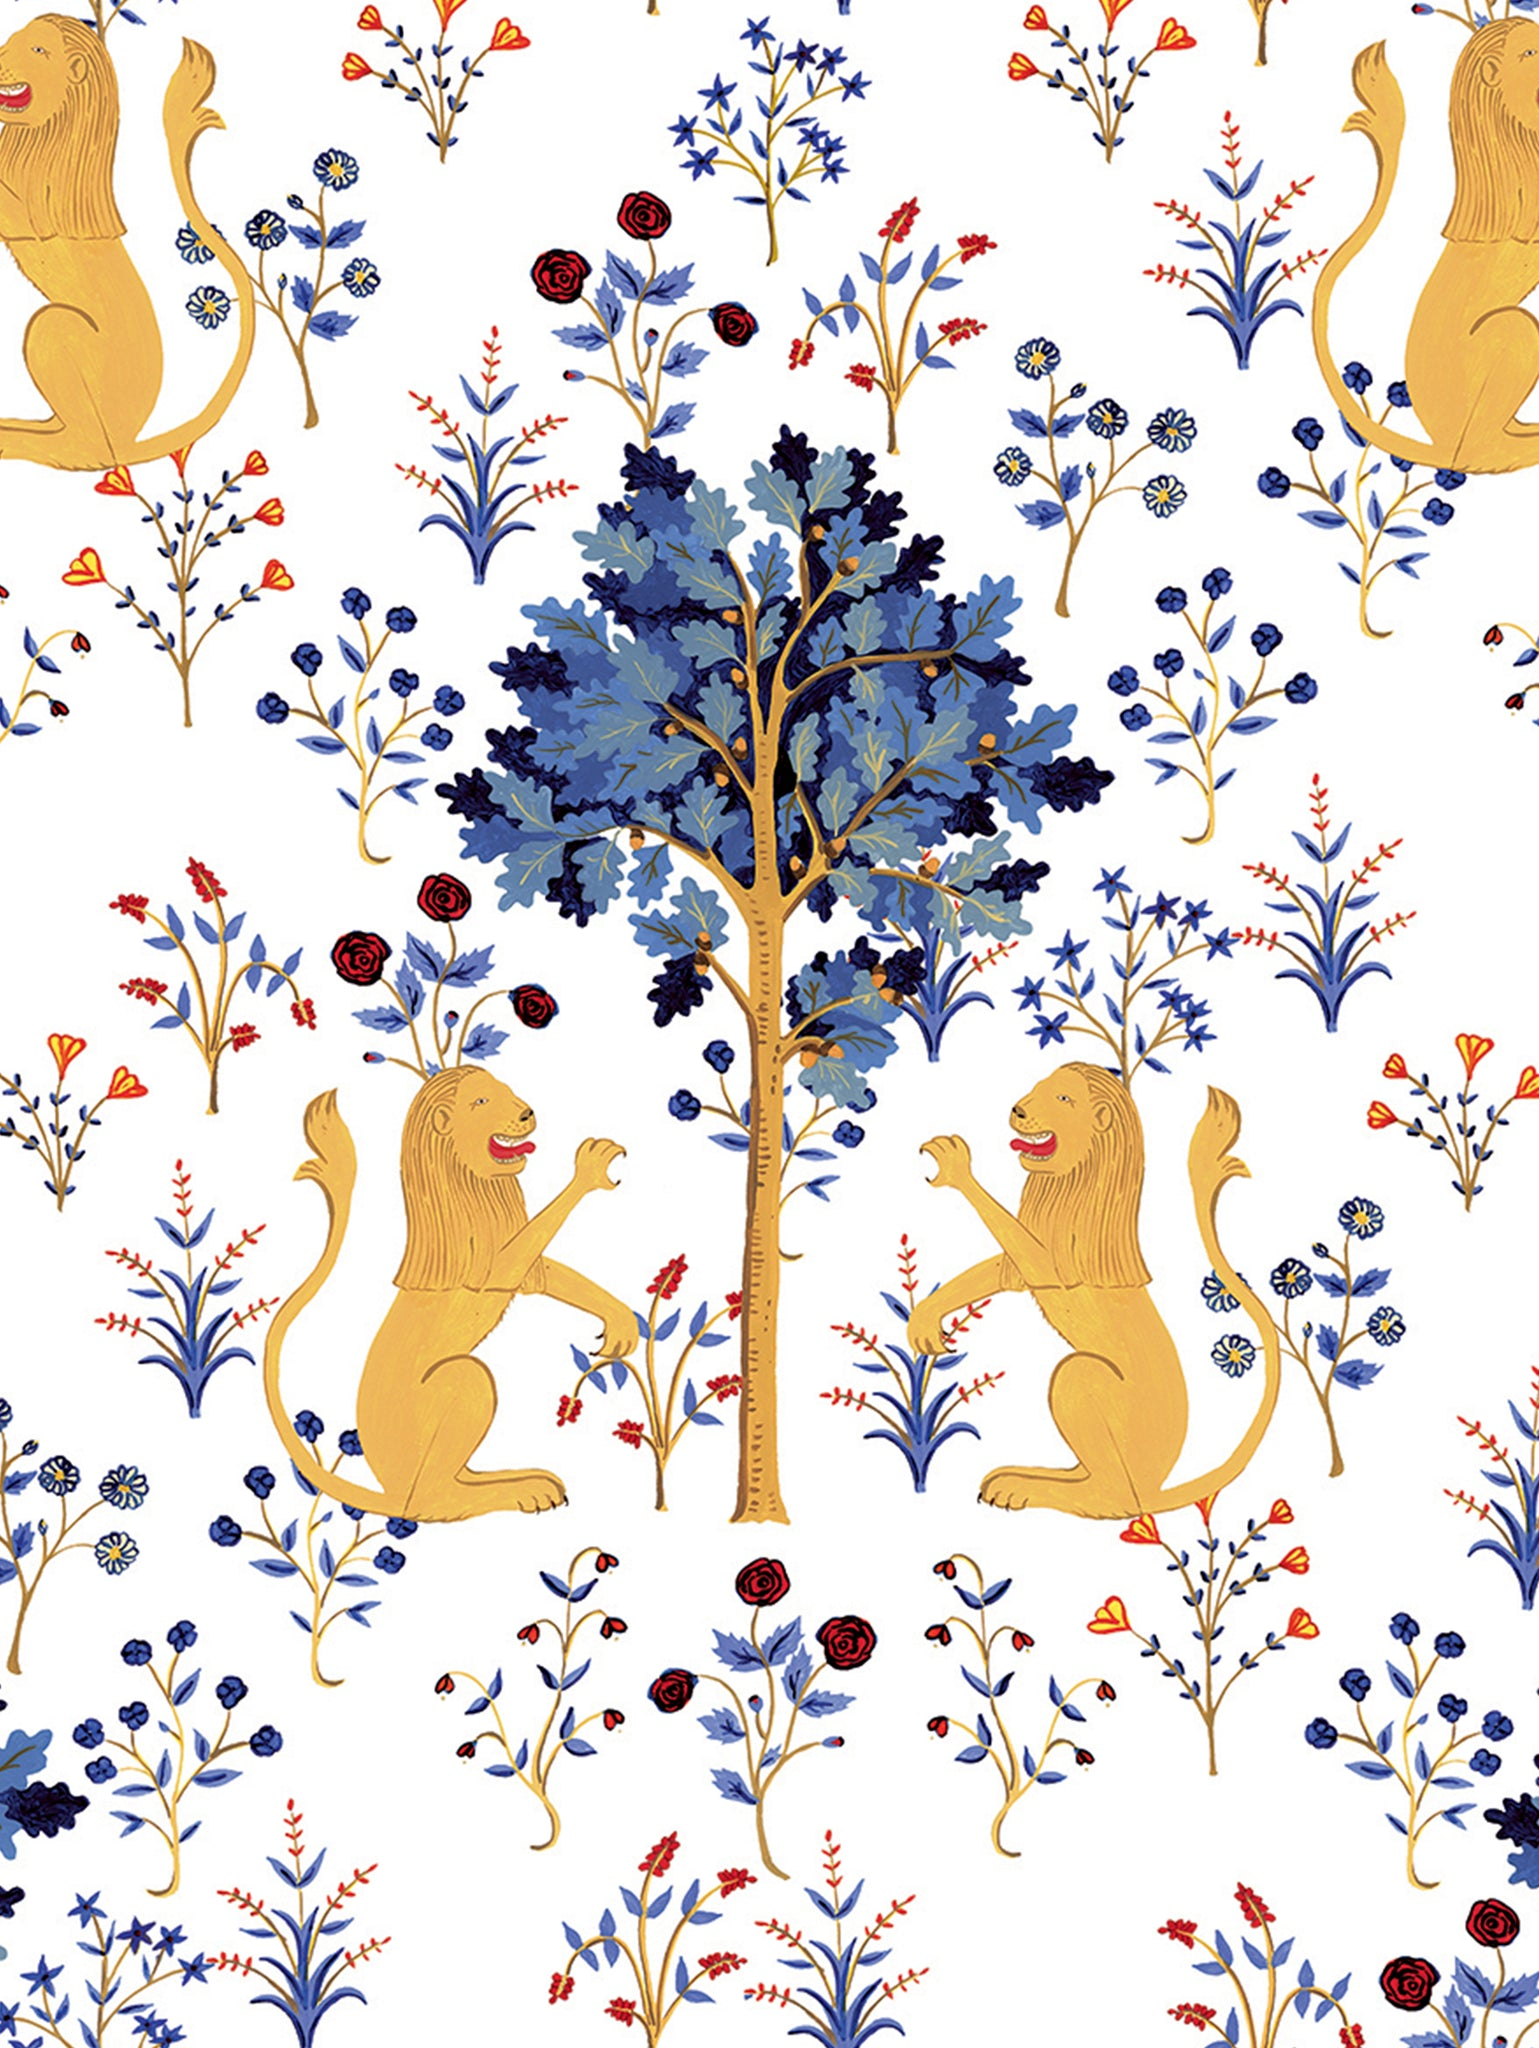 PAPEL DE PARED - MEDIEVAL TAPESTRY / WALL PAPER